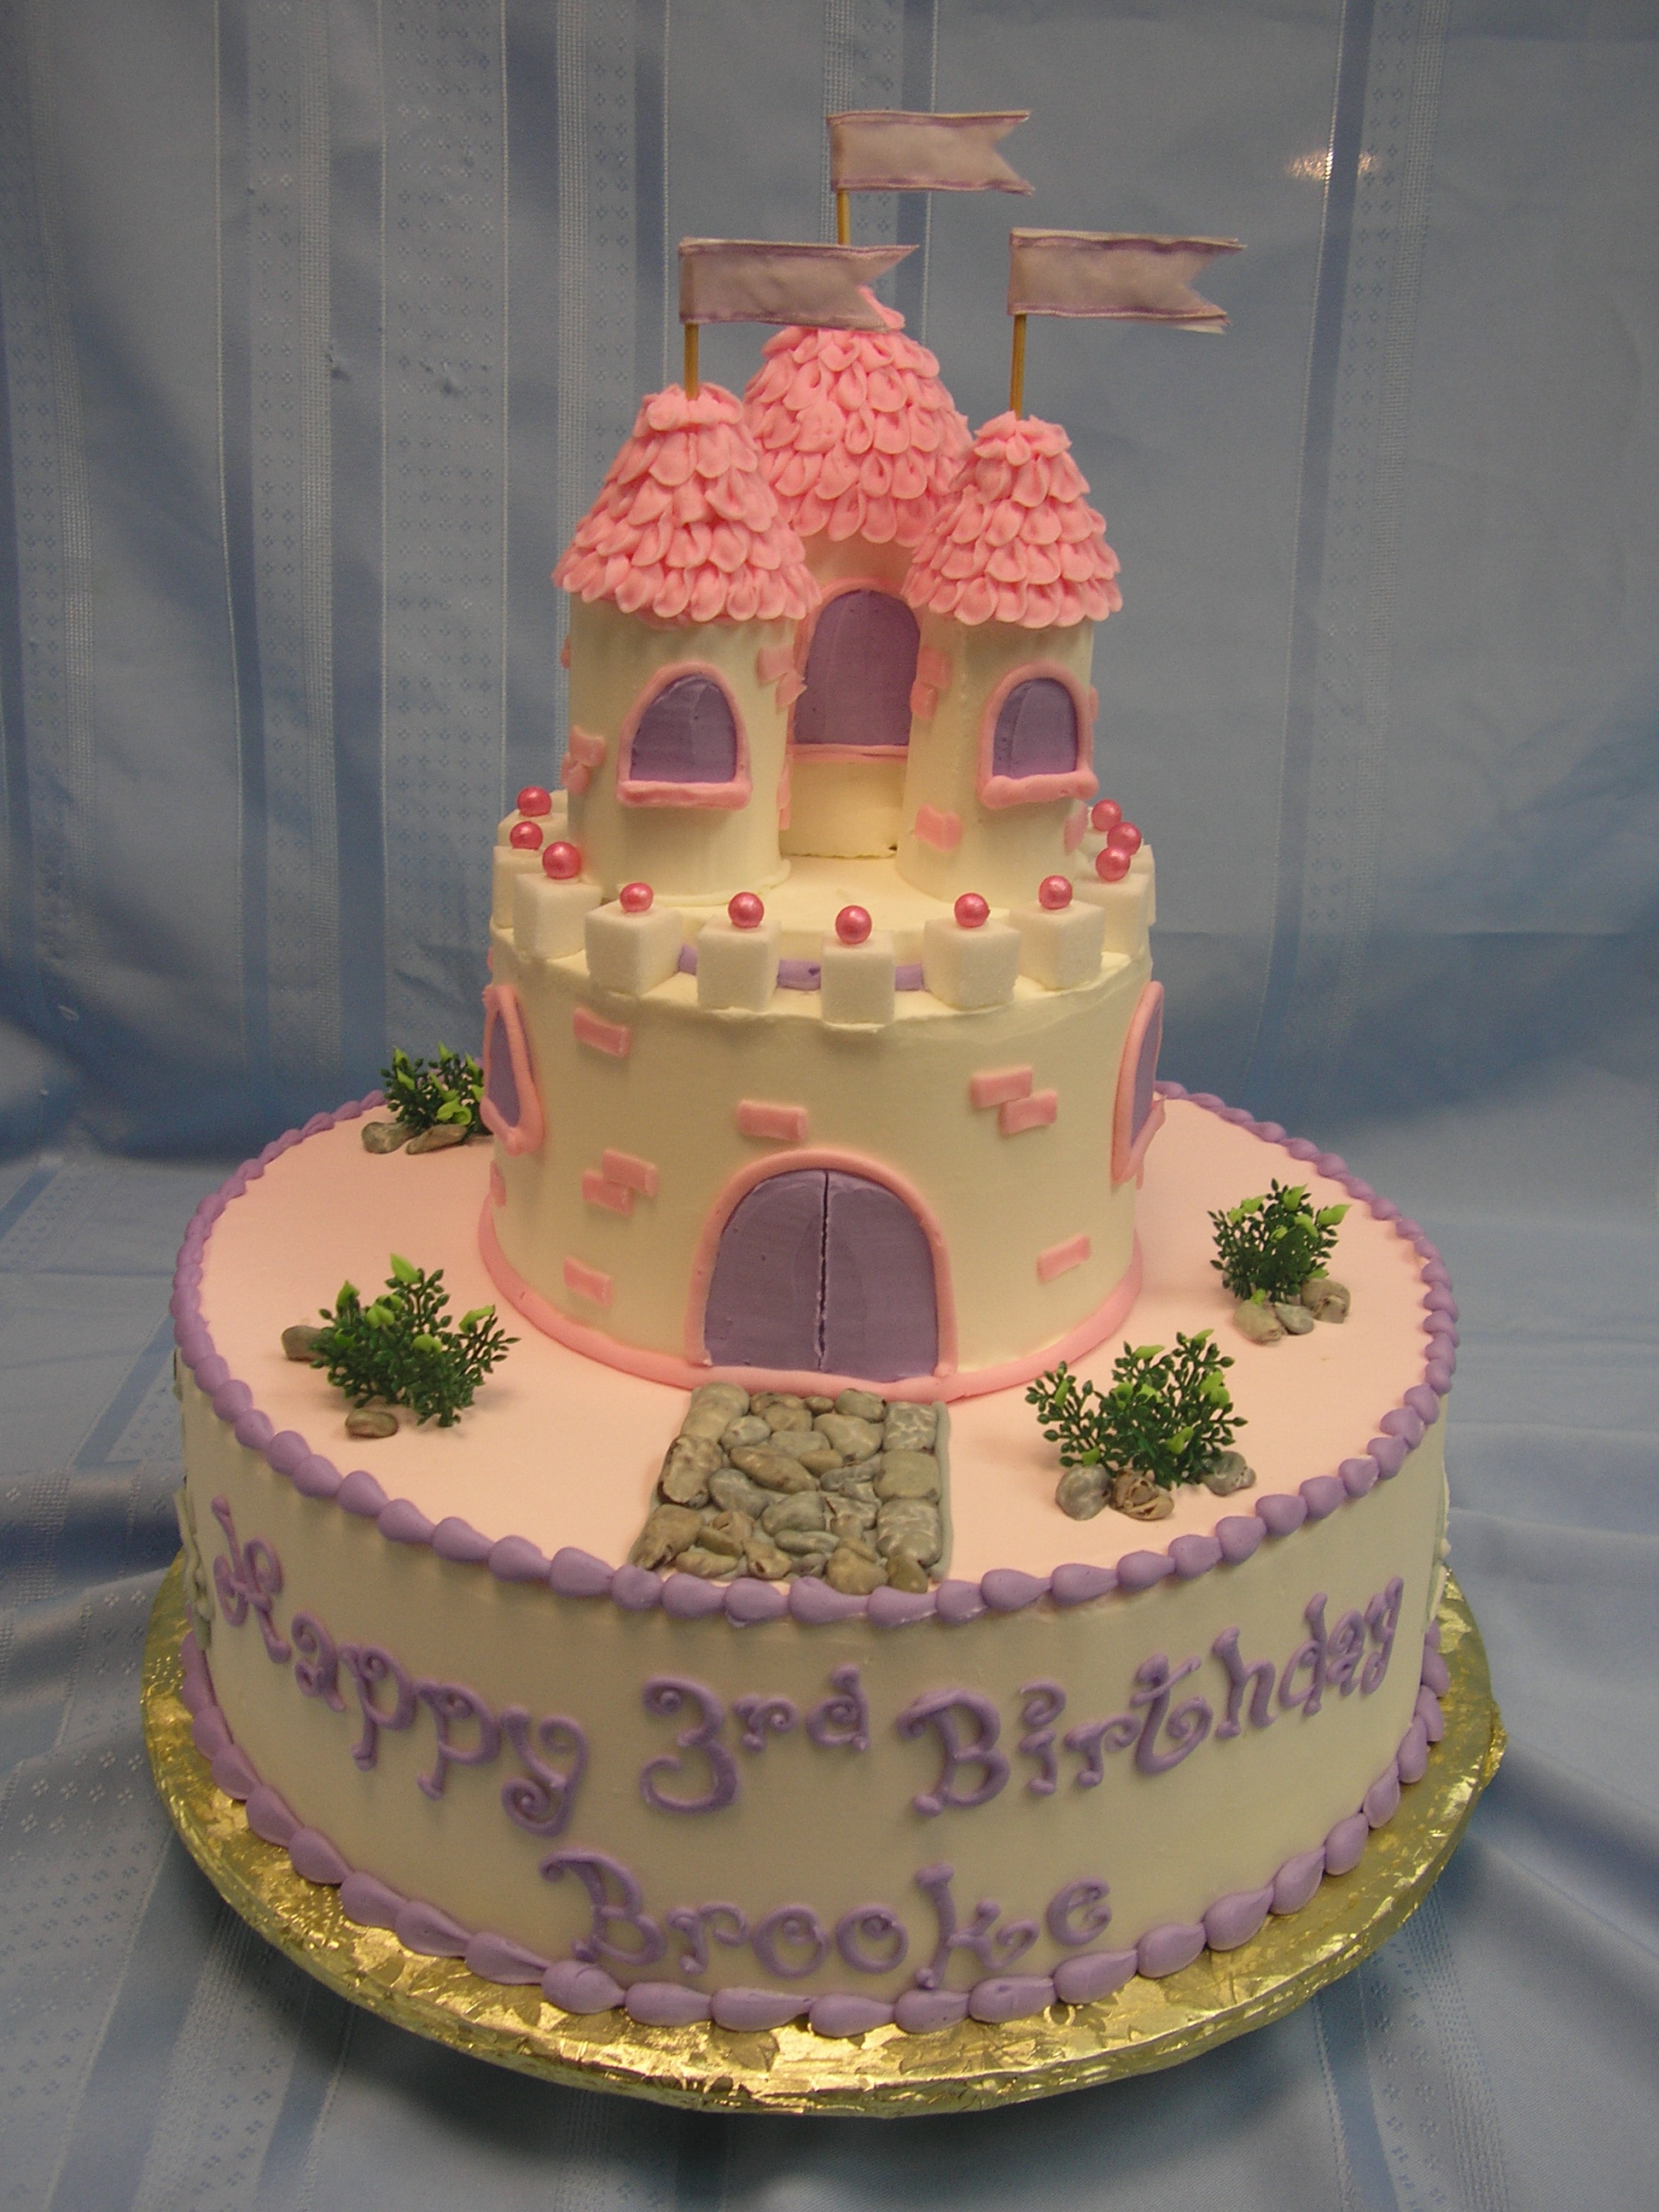 2 tier castle cake, cake with castle and moat